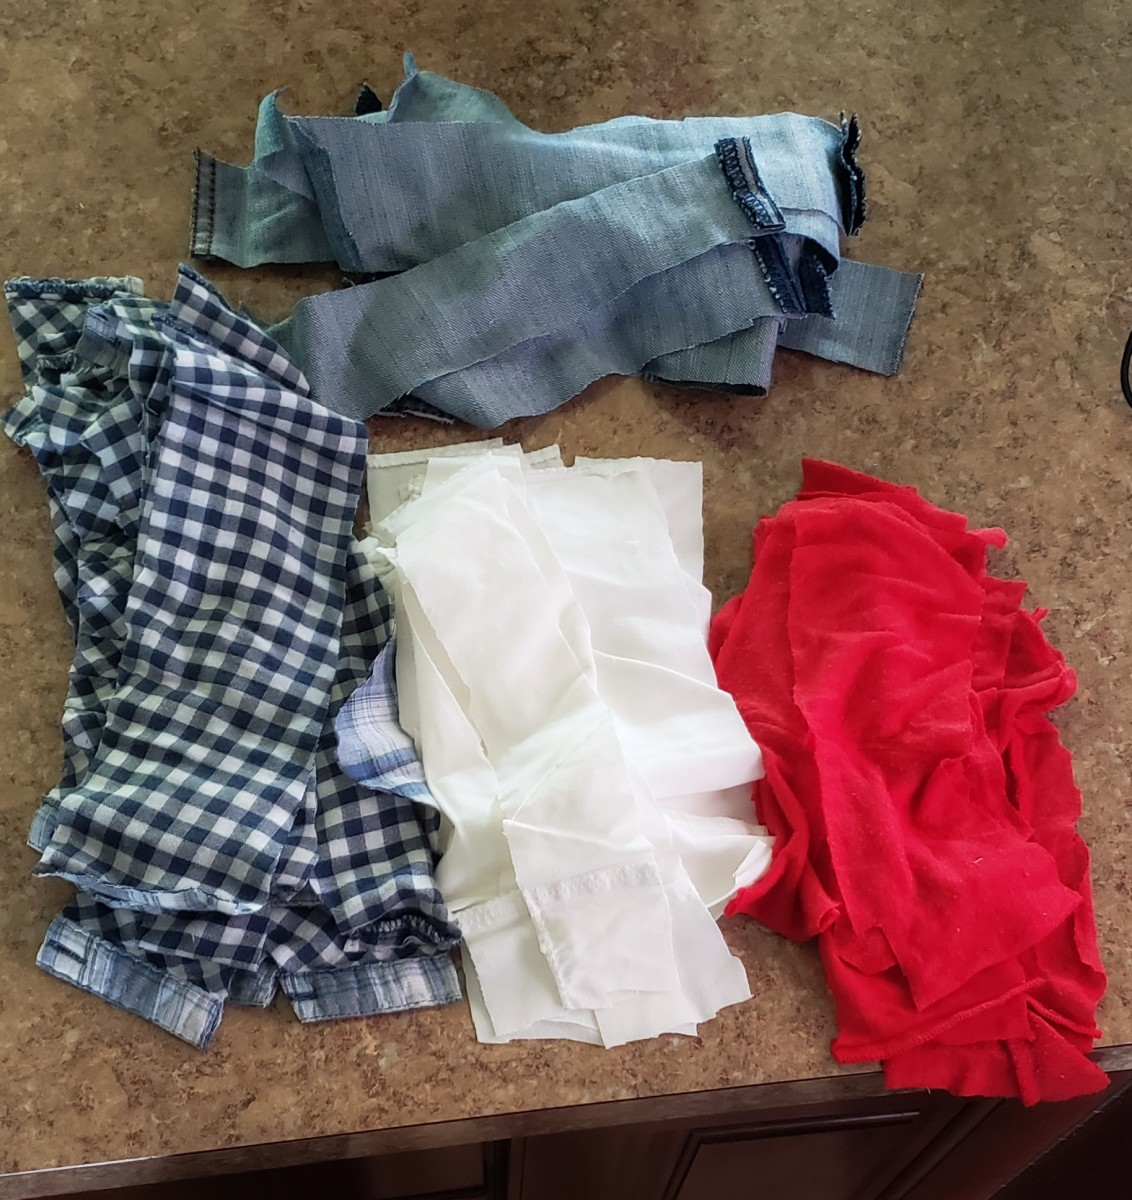 Cut your fabric into strips. Separate them into piles.